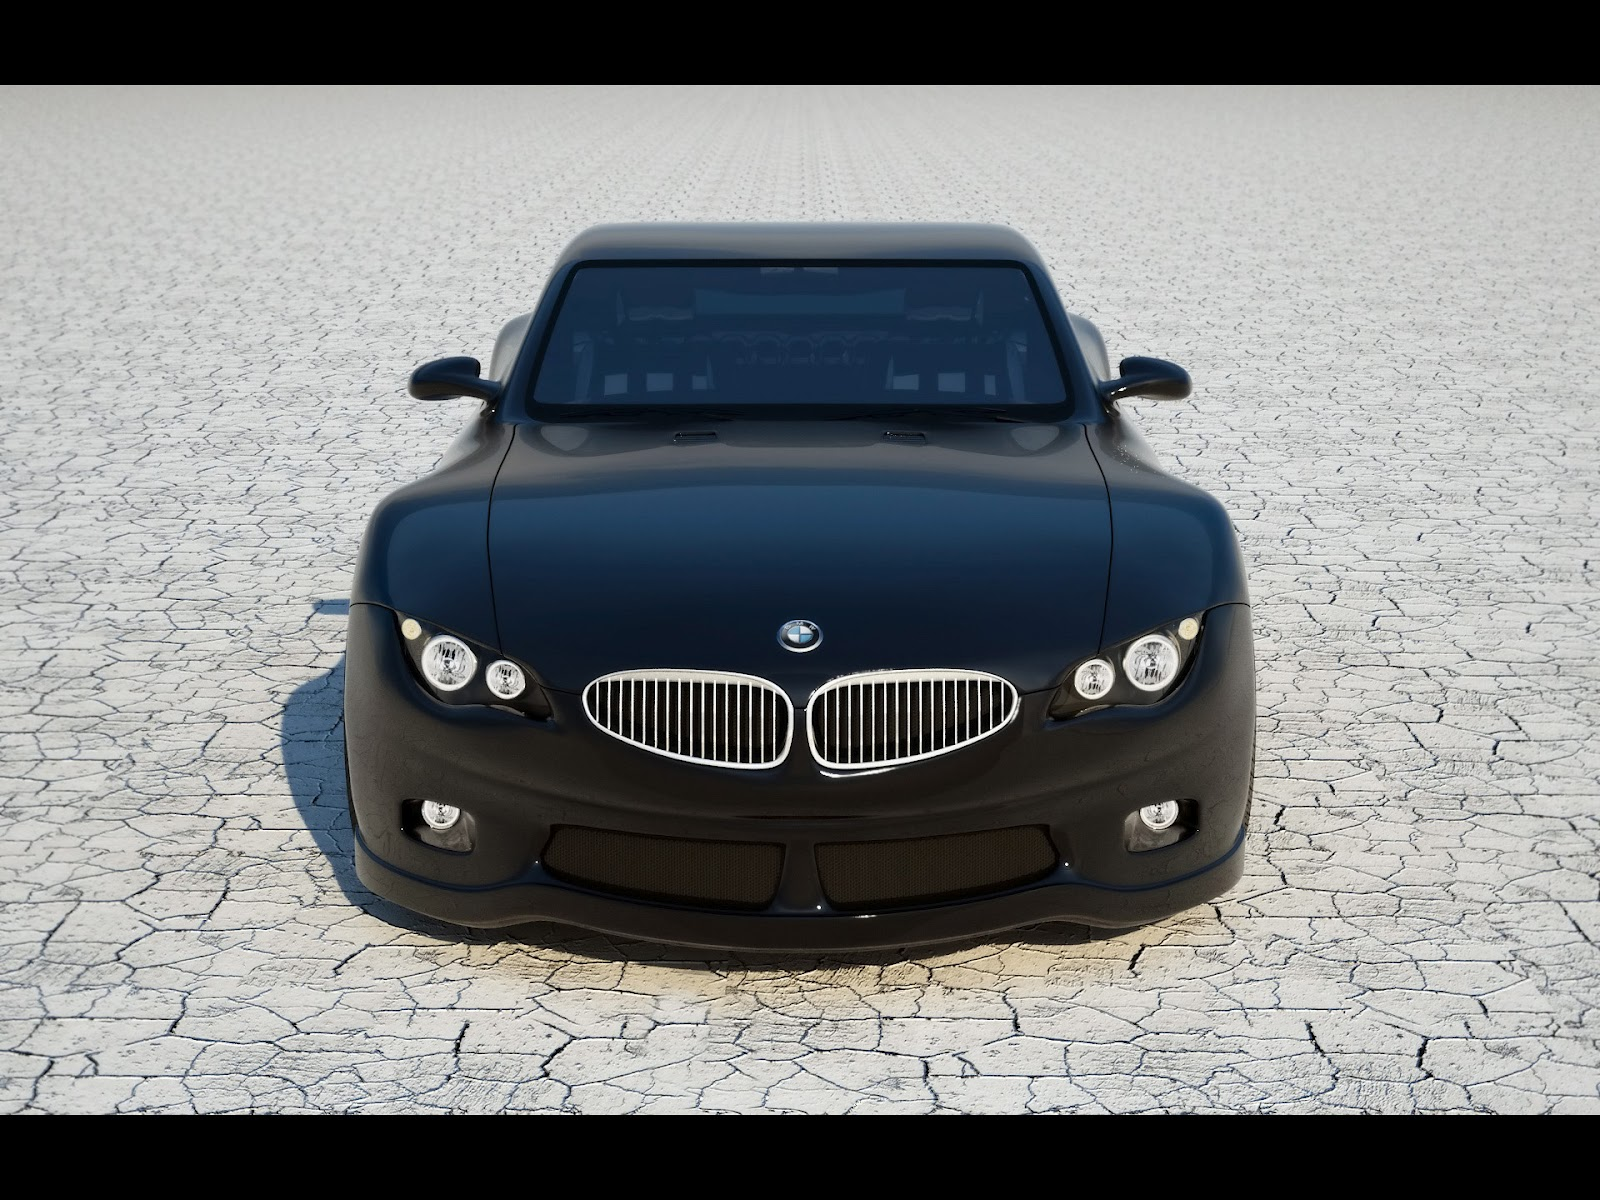 Black BMW Car Wallpaper HD